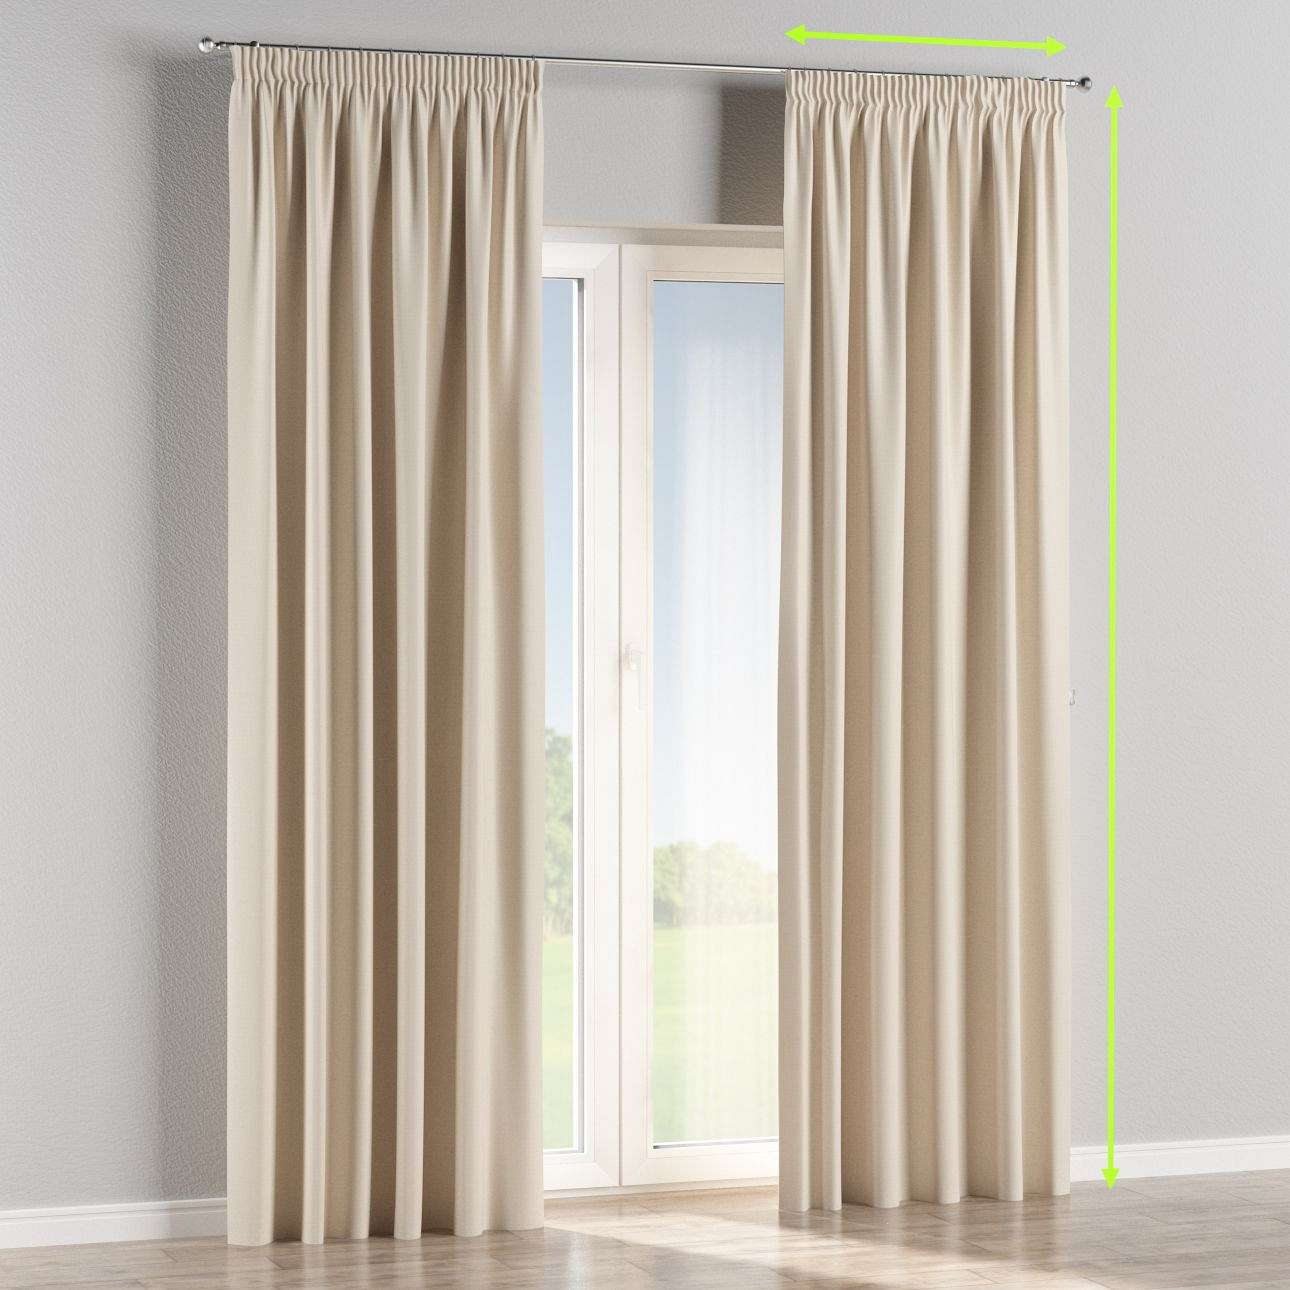 Blackout pencil pleat curtain in collection Blackout, fabric: 269-66